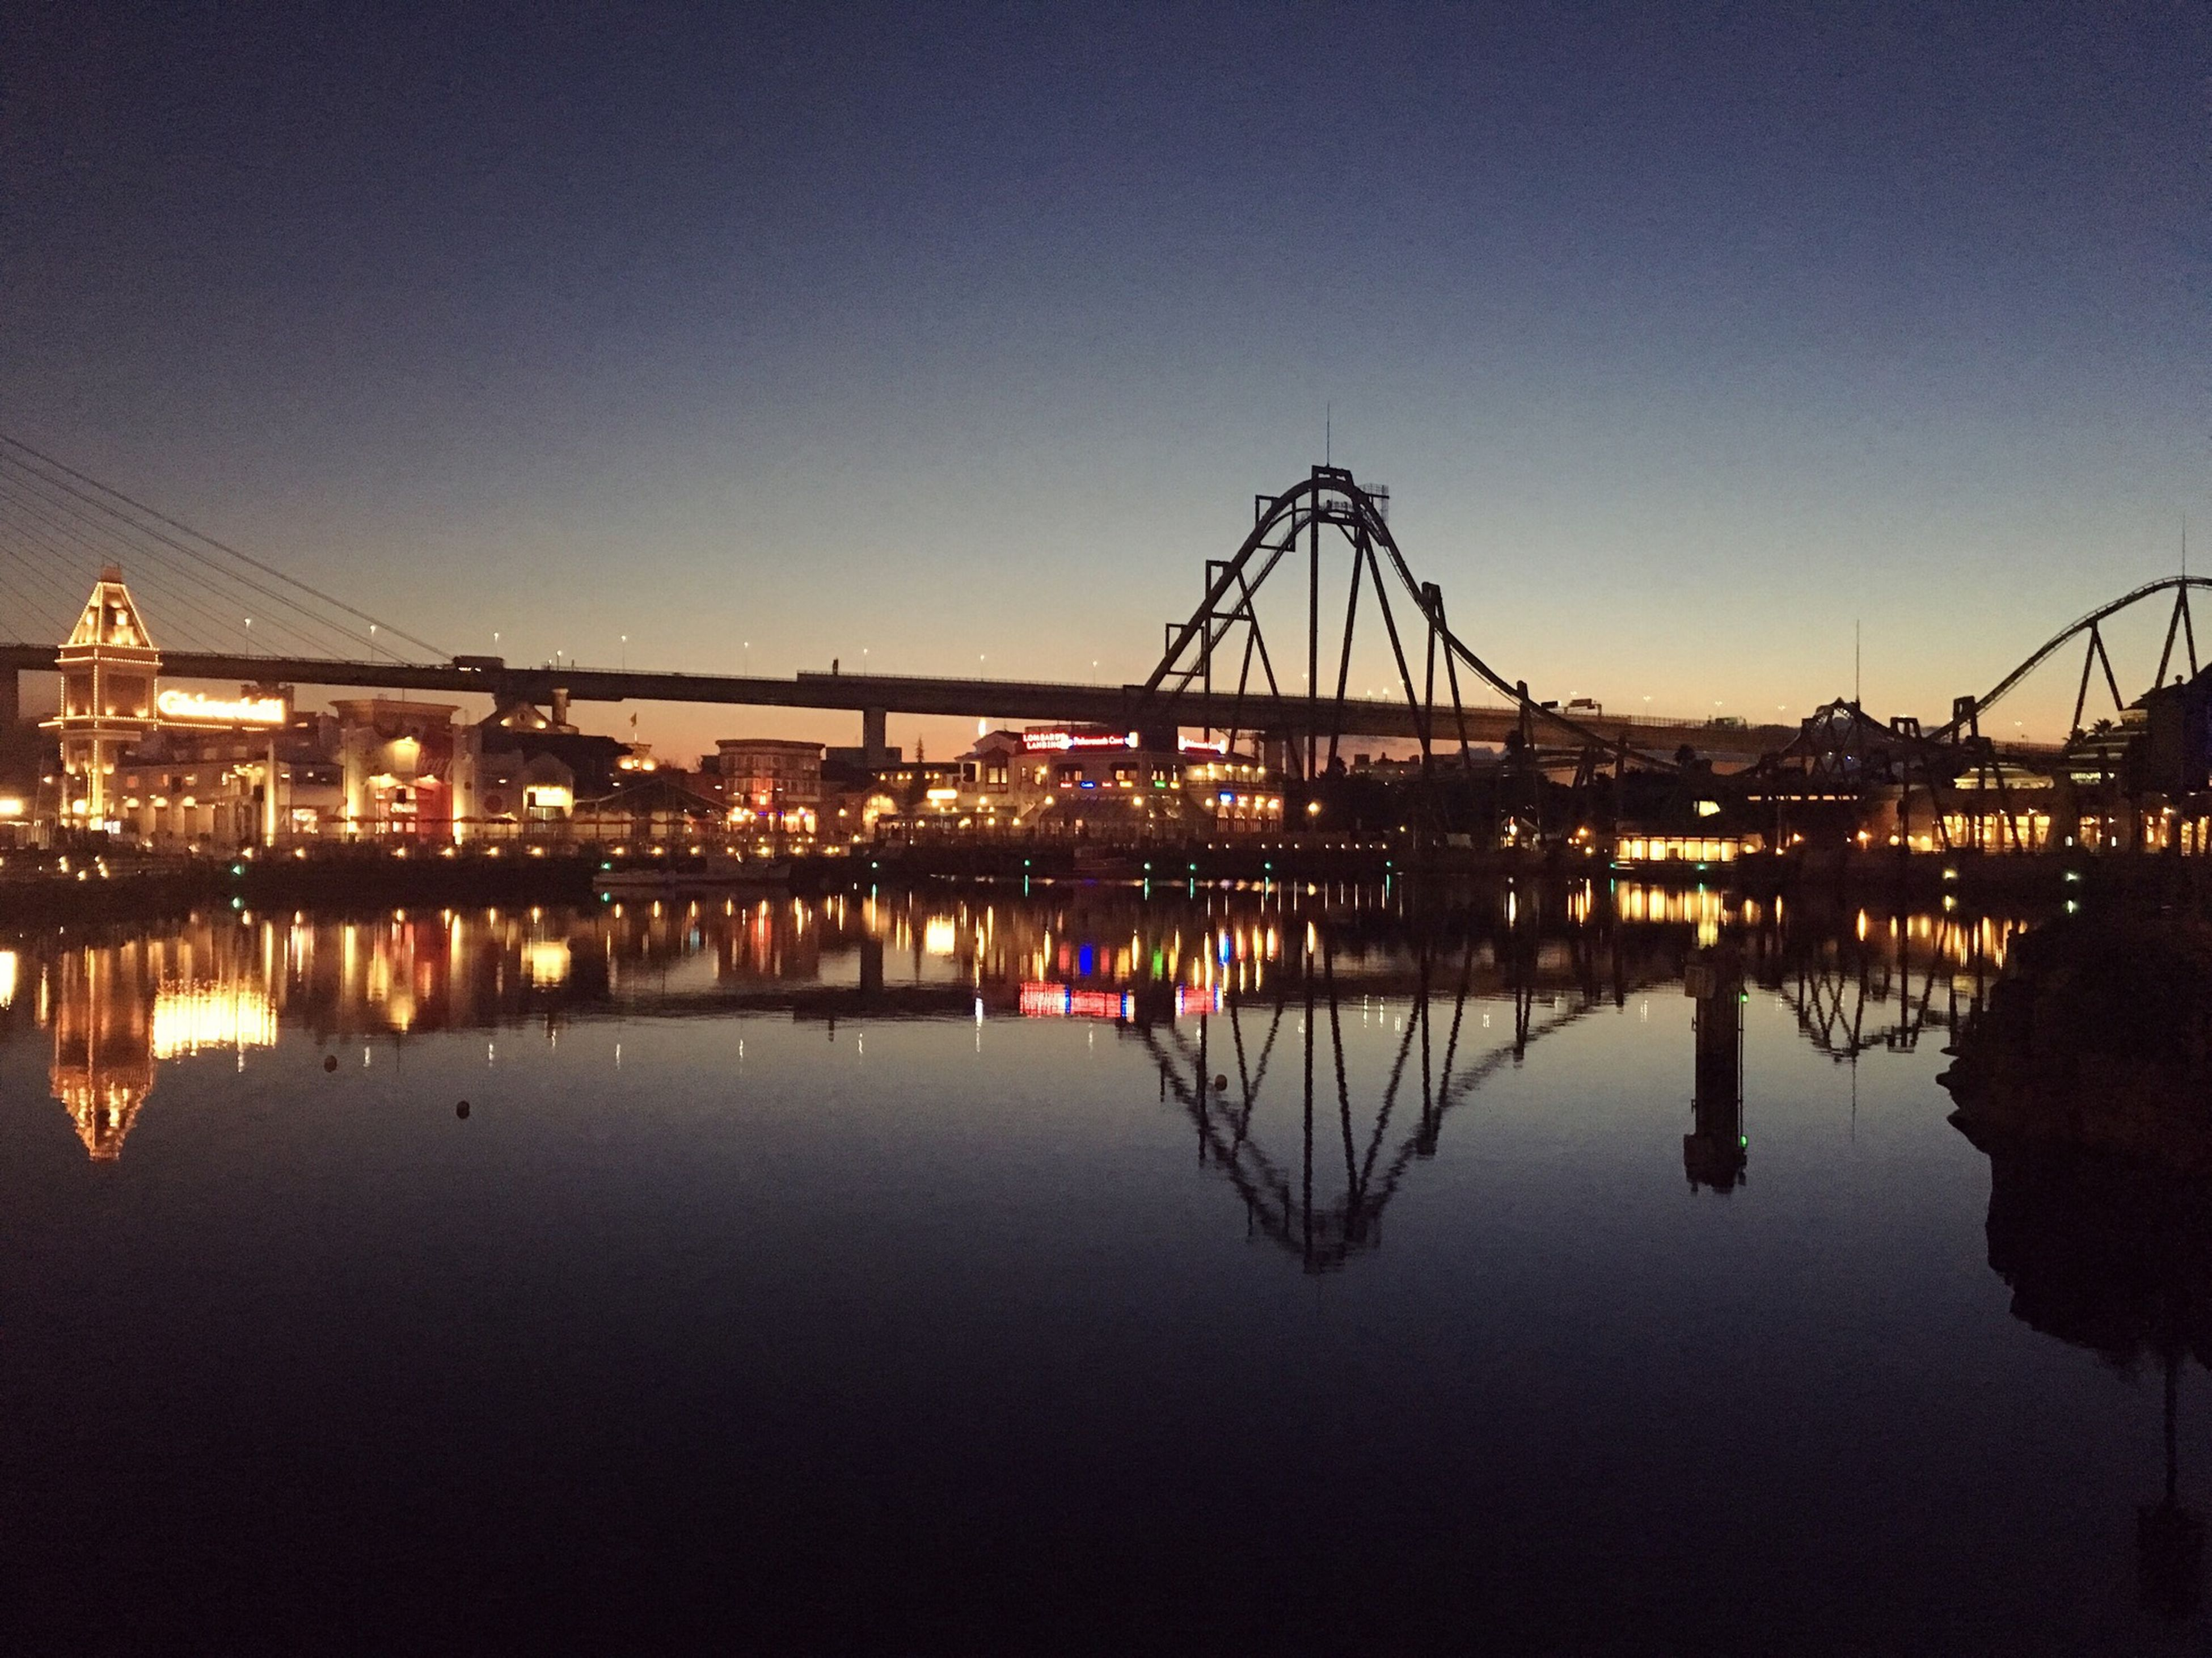 water, reflection, architecture, built structure, waterfront, clear sky, illuminated, connection, river, copy space, standing water, dusk, bridge - man made structure, building exterior, night, blue, sky, tranquility, transportation, outdoors